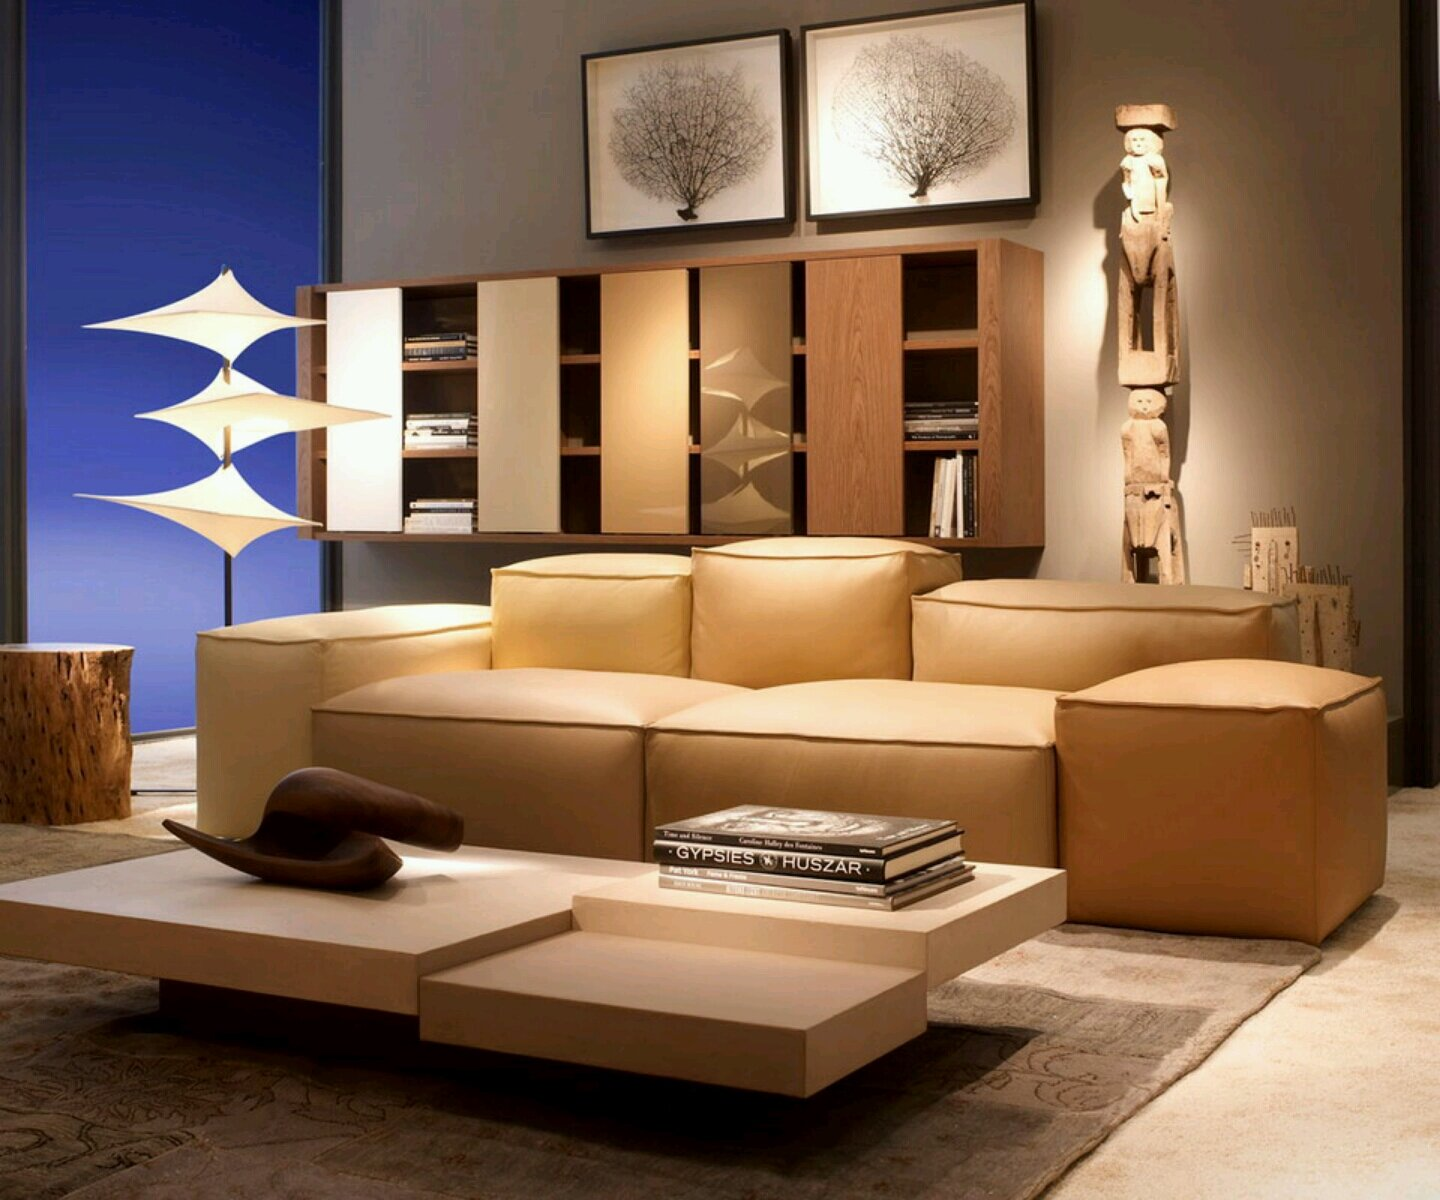 15 really beautiful sofa designs and ideas New home furniture ideas